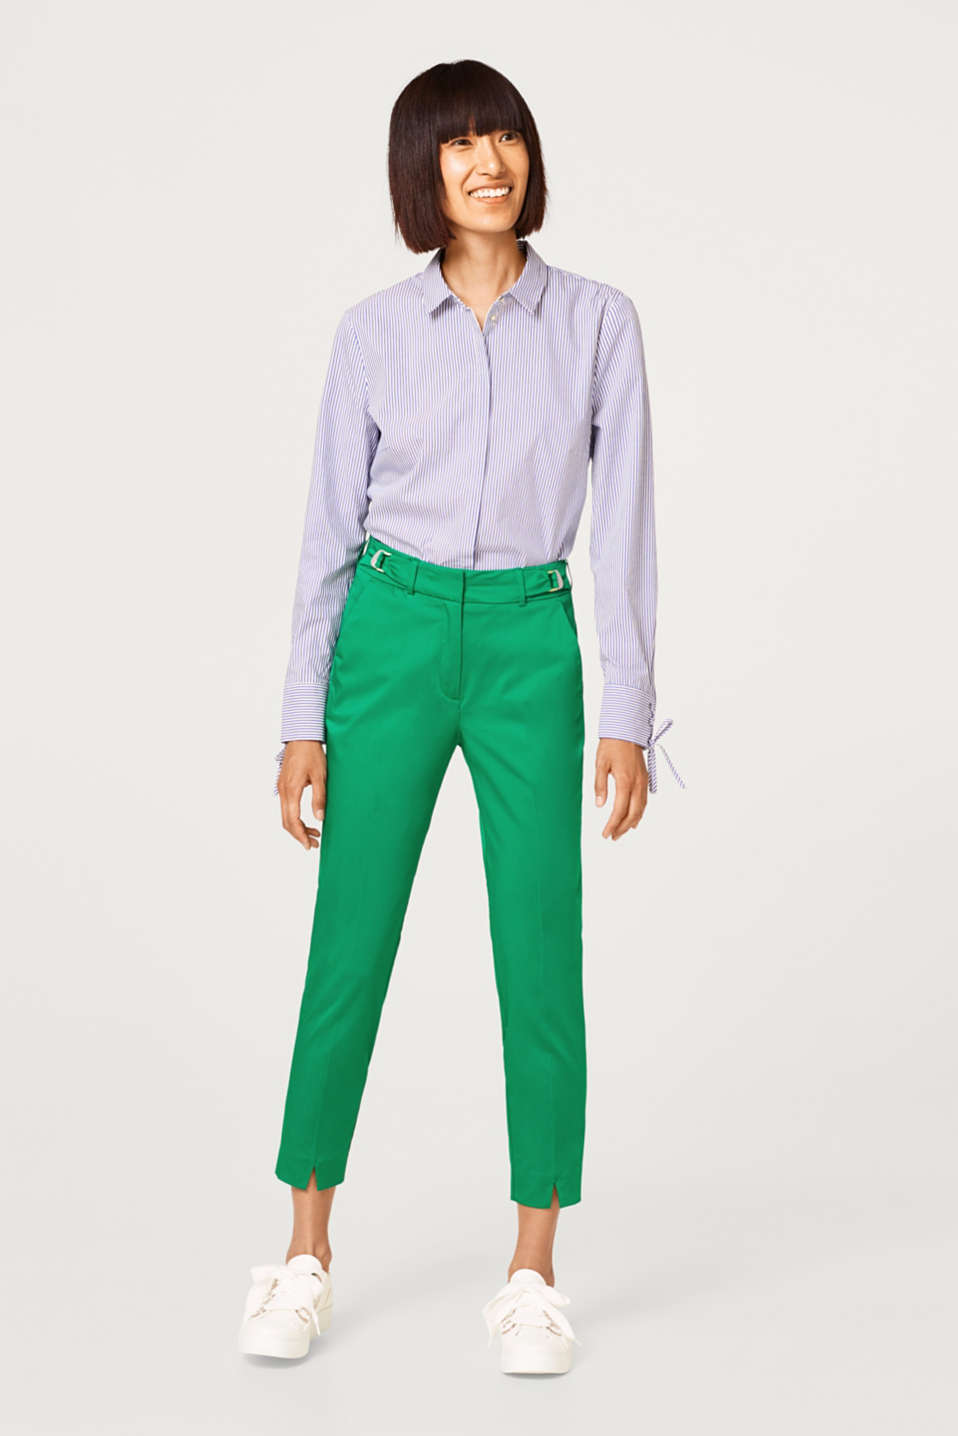 Esprit - Satined stretch trousers with buckle details